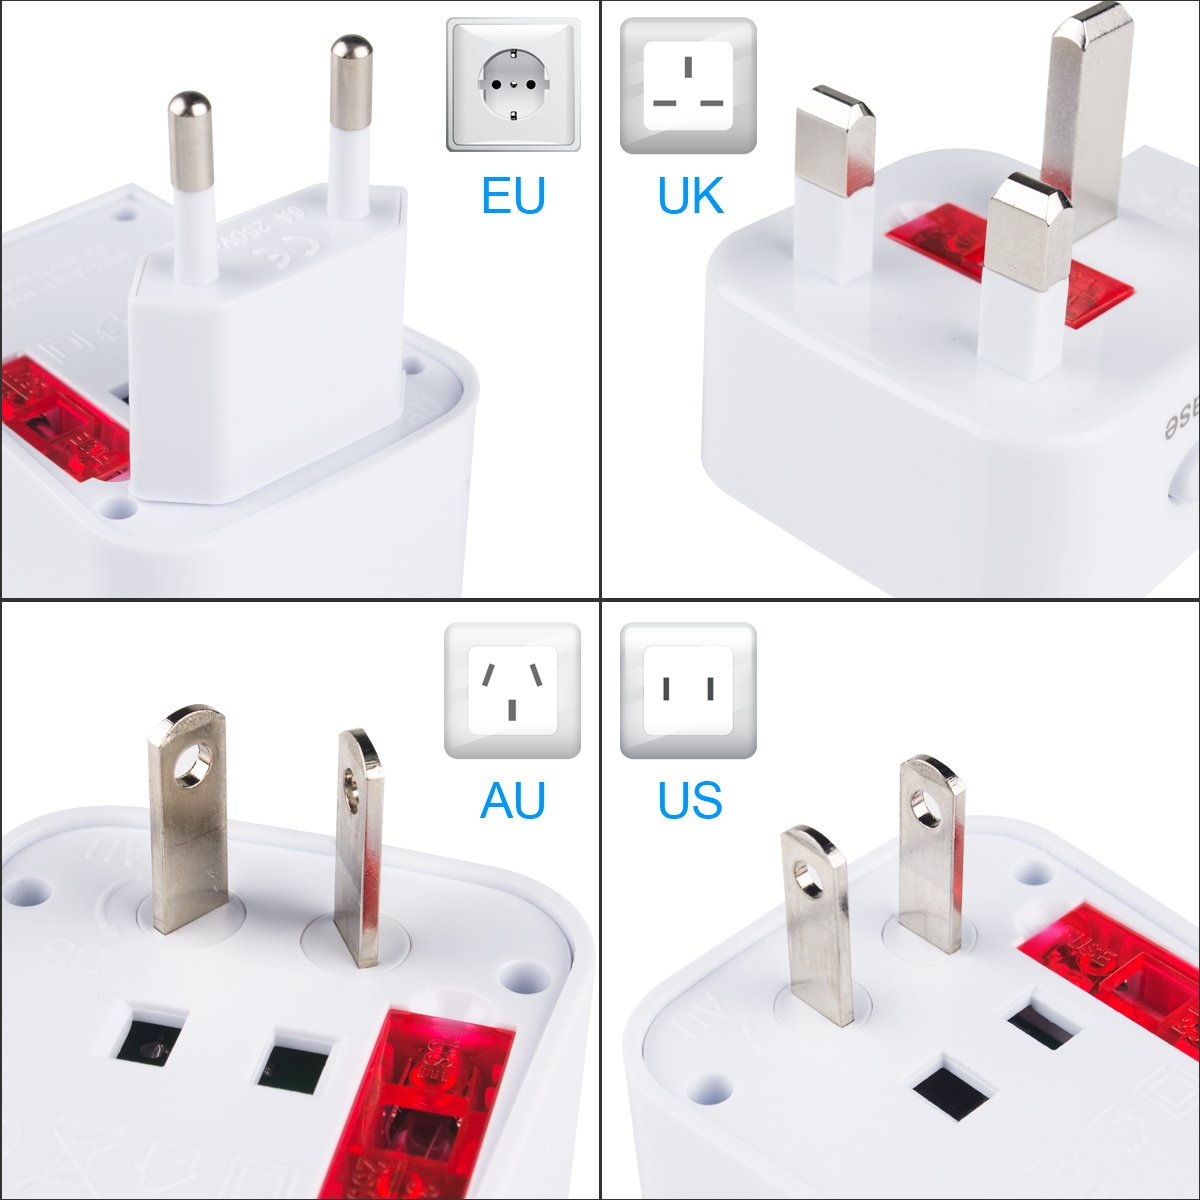 Keenstone 2Pcs International Power Adapter Plug with Dual USB Charging Ports Universal Travel Adapter for US Europe Ireland UK Australia Asia Worldwide Power Plug